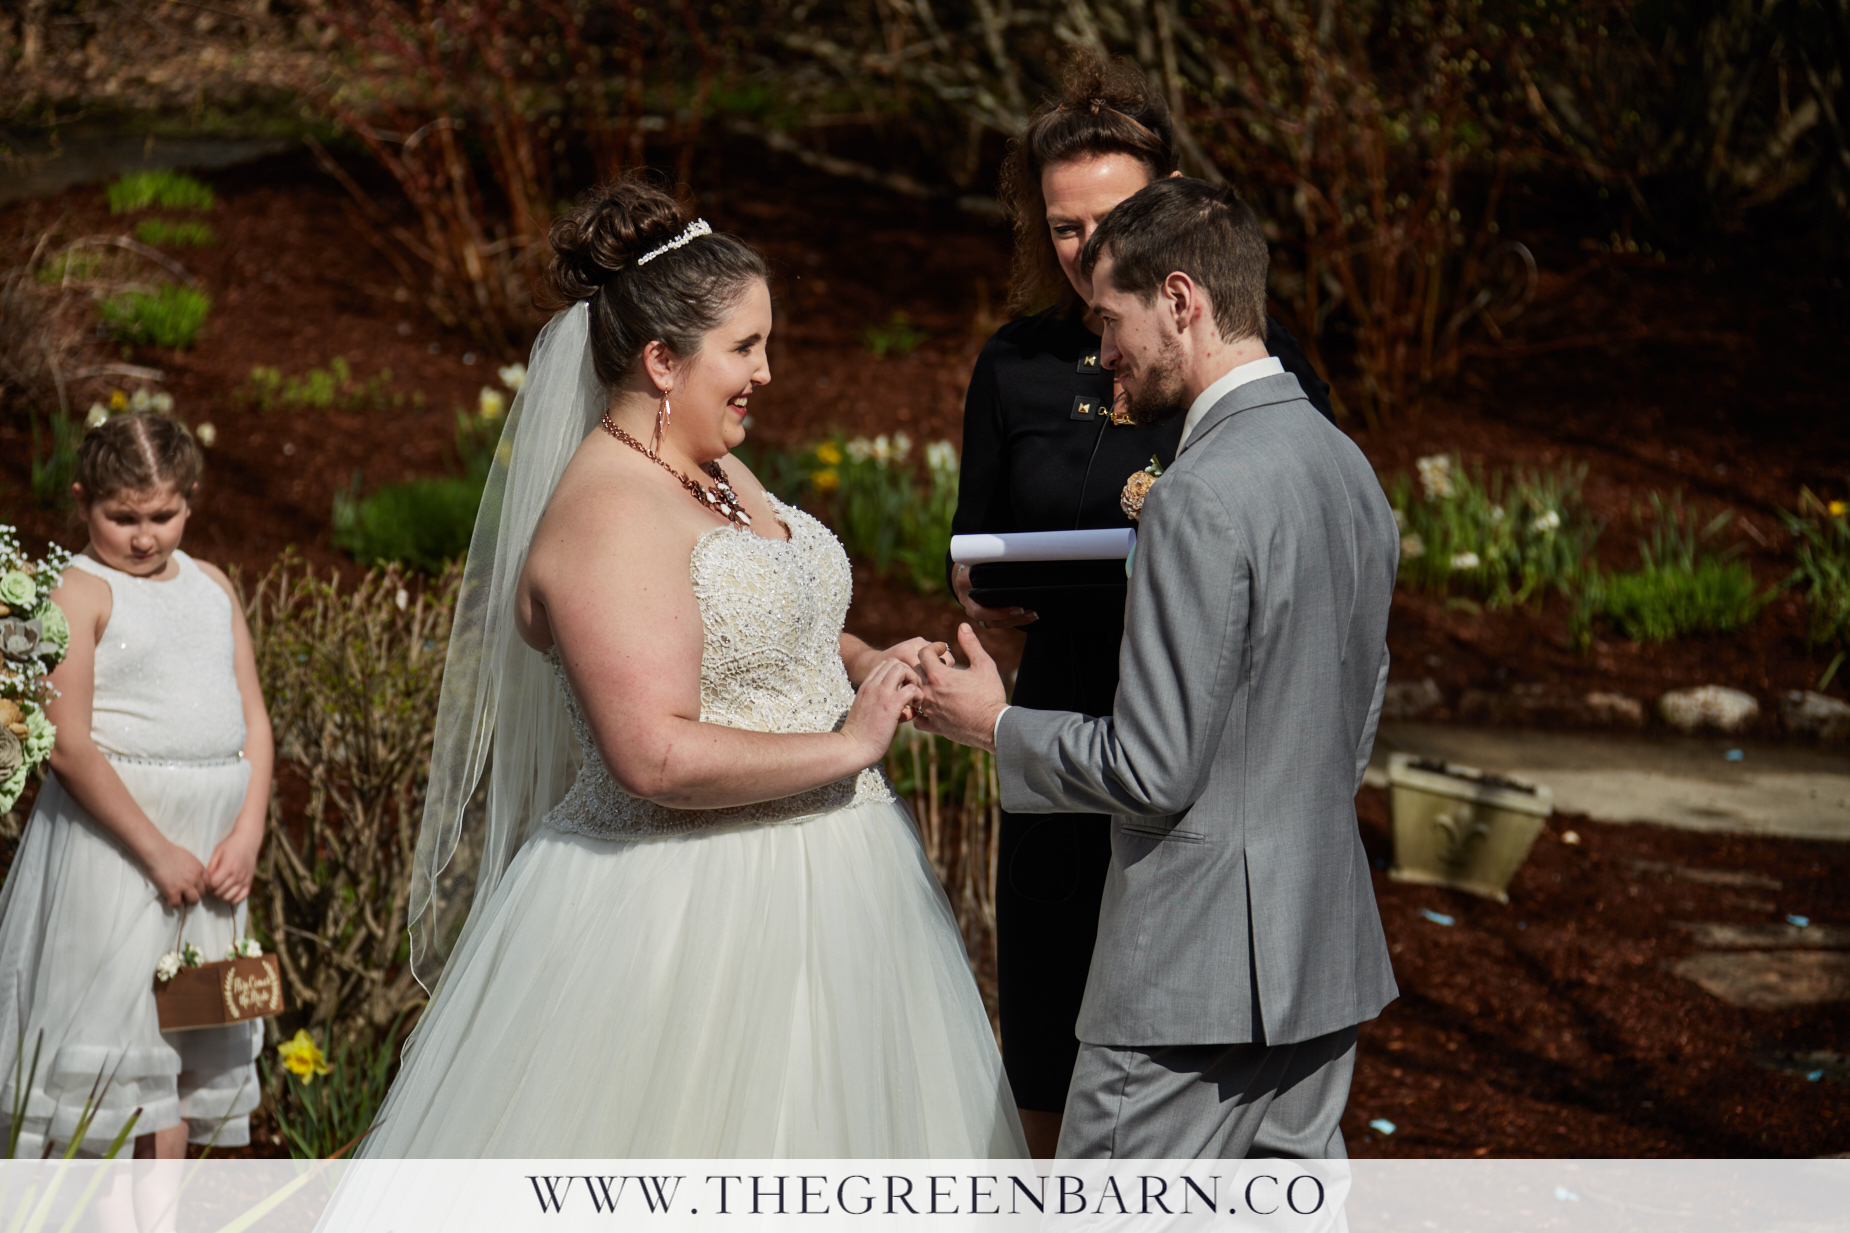 Bride and Groom Exchange Rings at their Garden Wedding Ceremony at Catamount Country Club in Northern Vermont